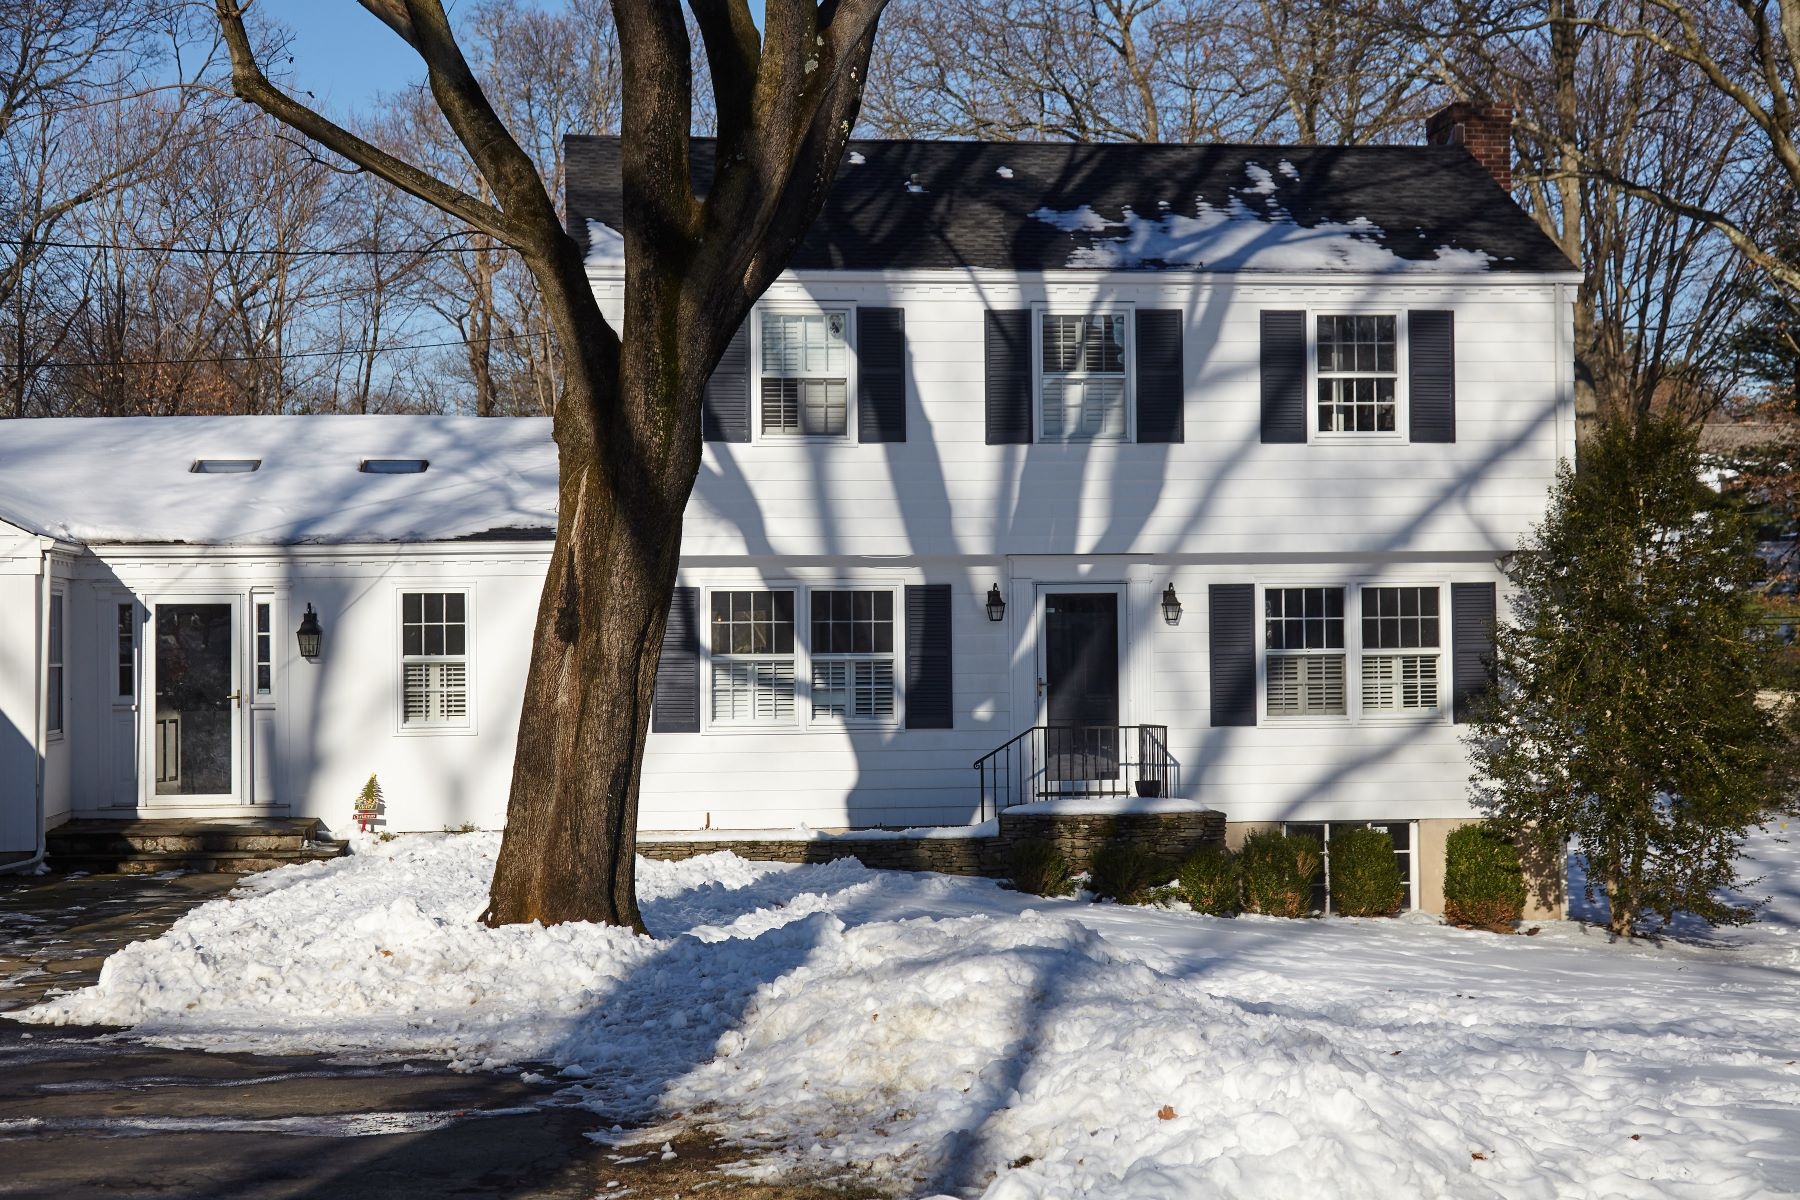 Single Family Home for Rent at Convenient To Everything! 24 Ferry Lane East, Westport, Connecticut, 06880 United States